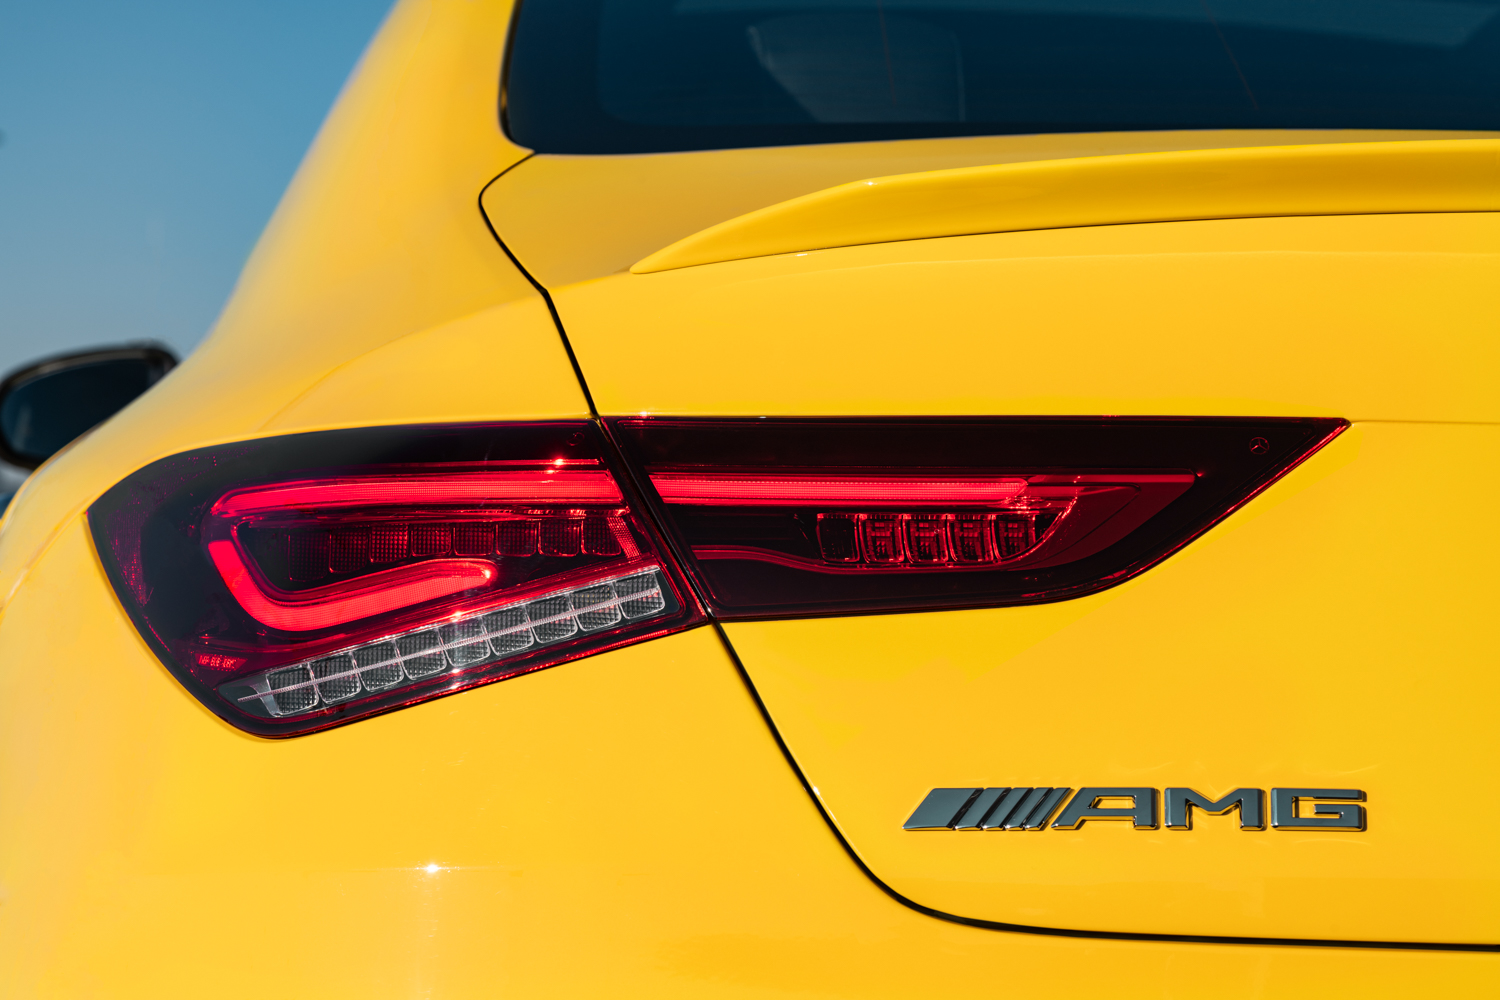 2020 Mercedes-AMG CLA 35 rear taillight